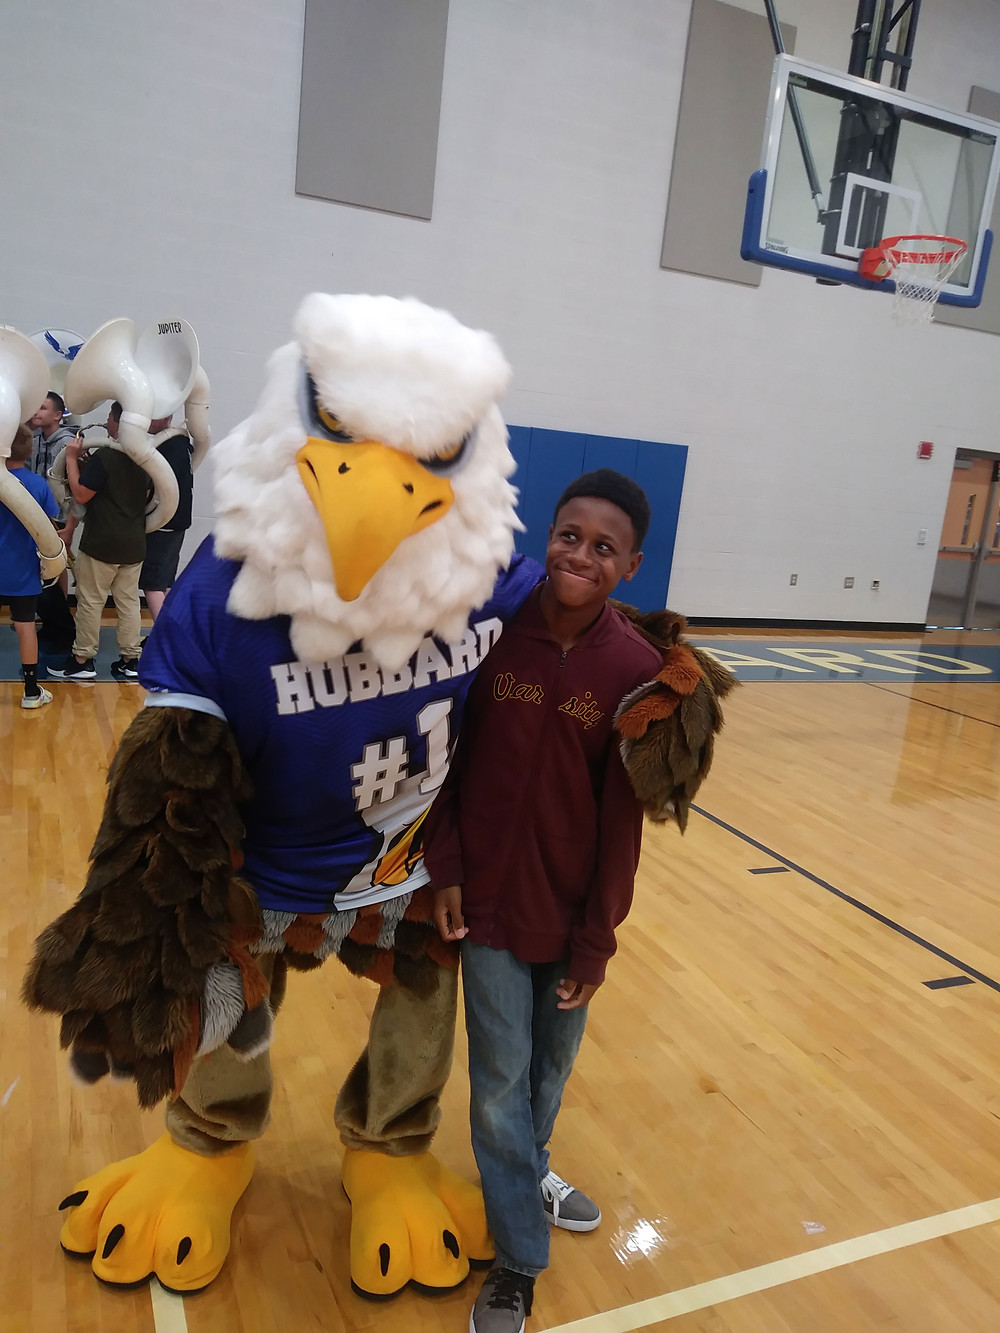 Hubbard Student posing with the Hubbard Eagle Mascot